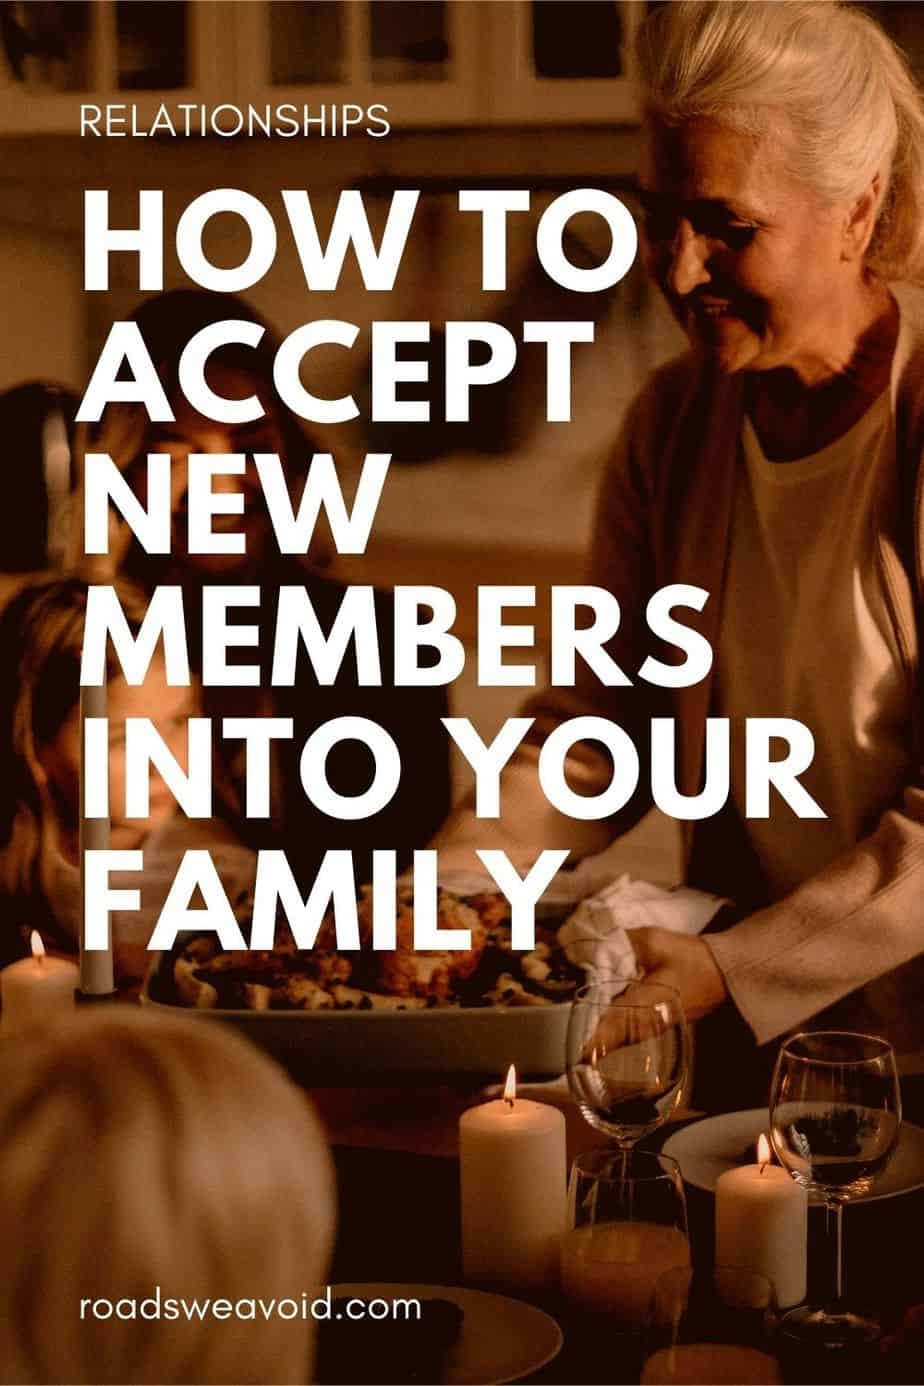 How to accept new members in your family the right way